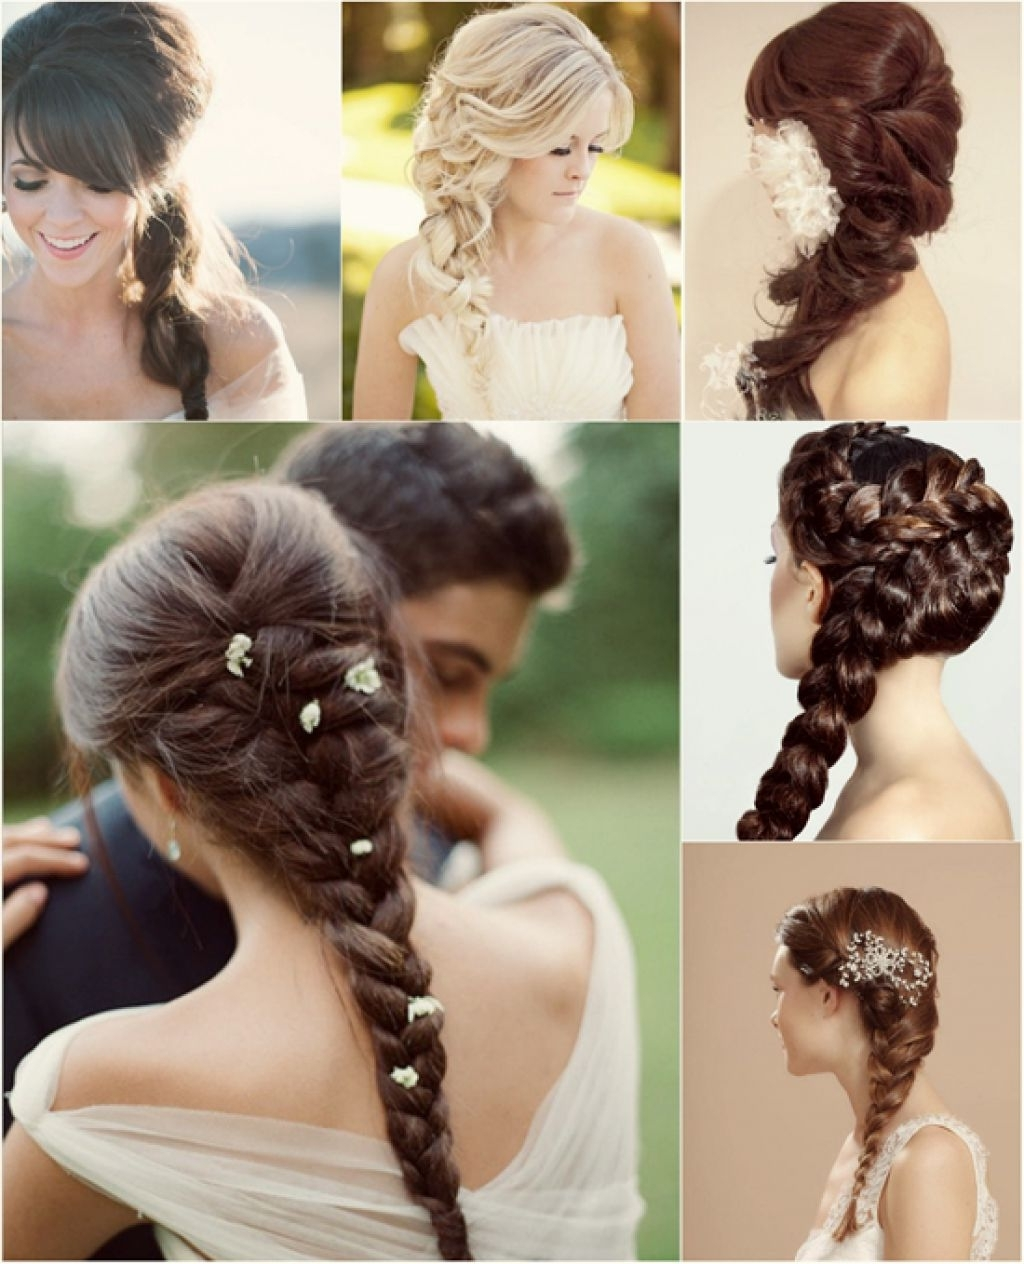 Above Long Braided Black And Blonde Wedding Hairstyles – Girly Throughout Preferred Wedding Braided Hairstyles For Long Hair (View 14 of 15)